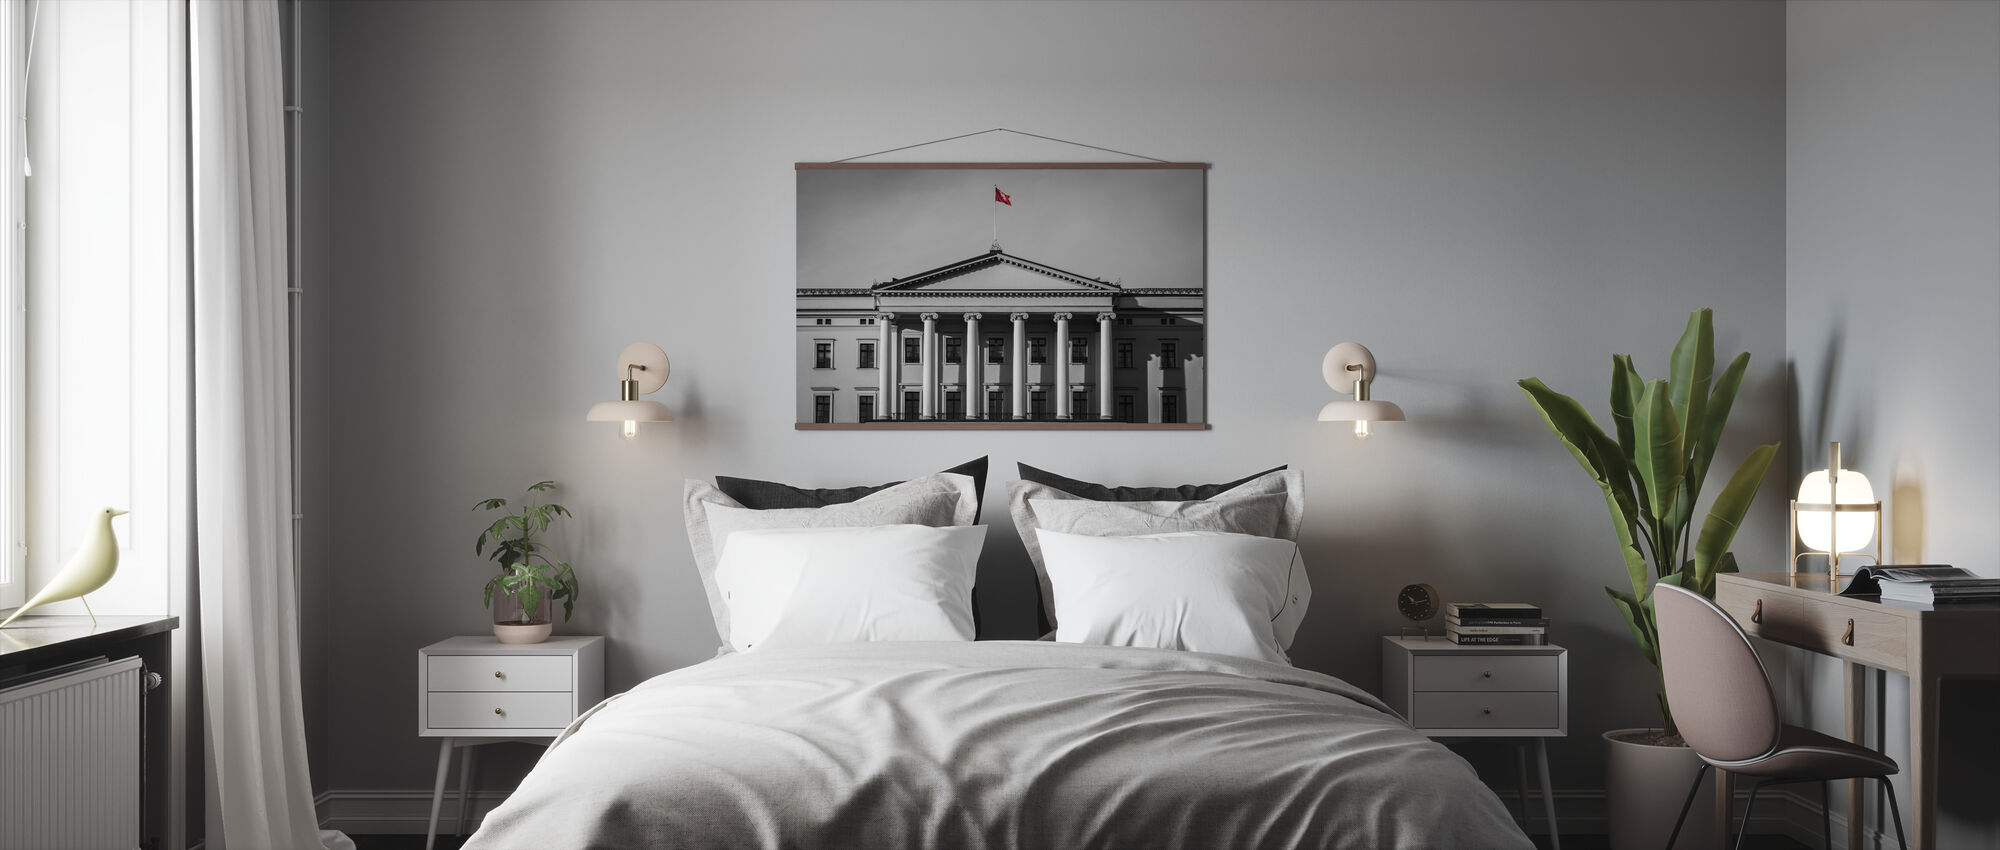 Royal Palace - Poster - Bedroom